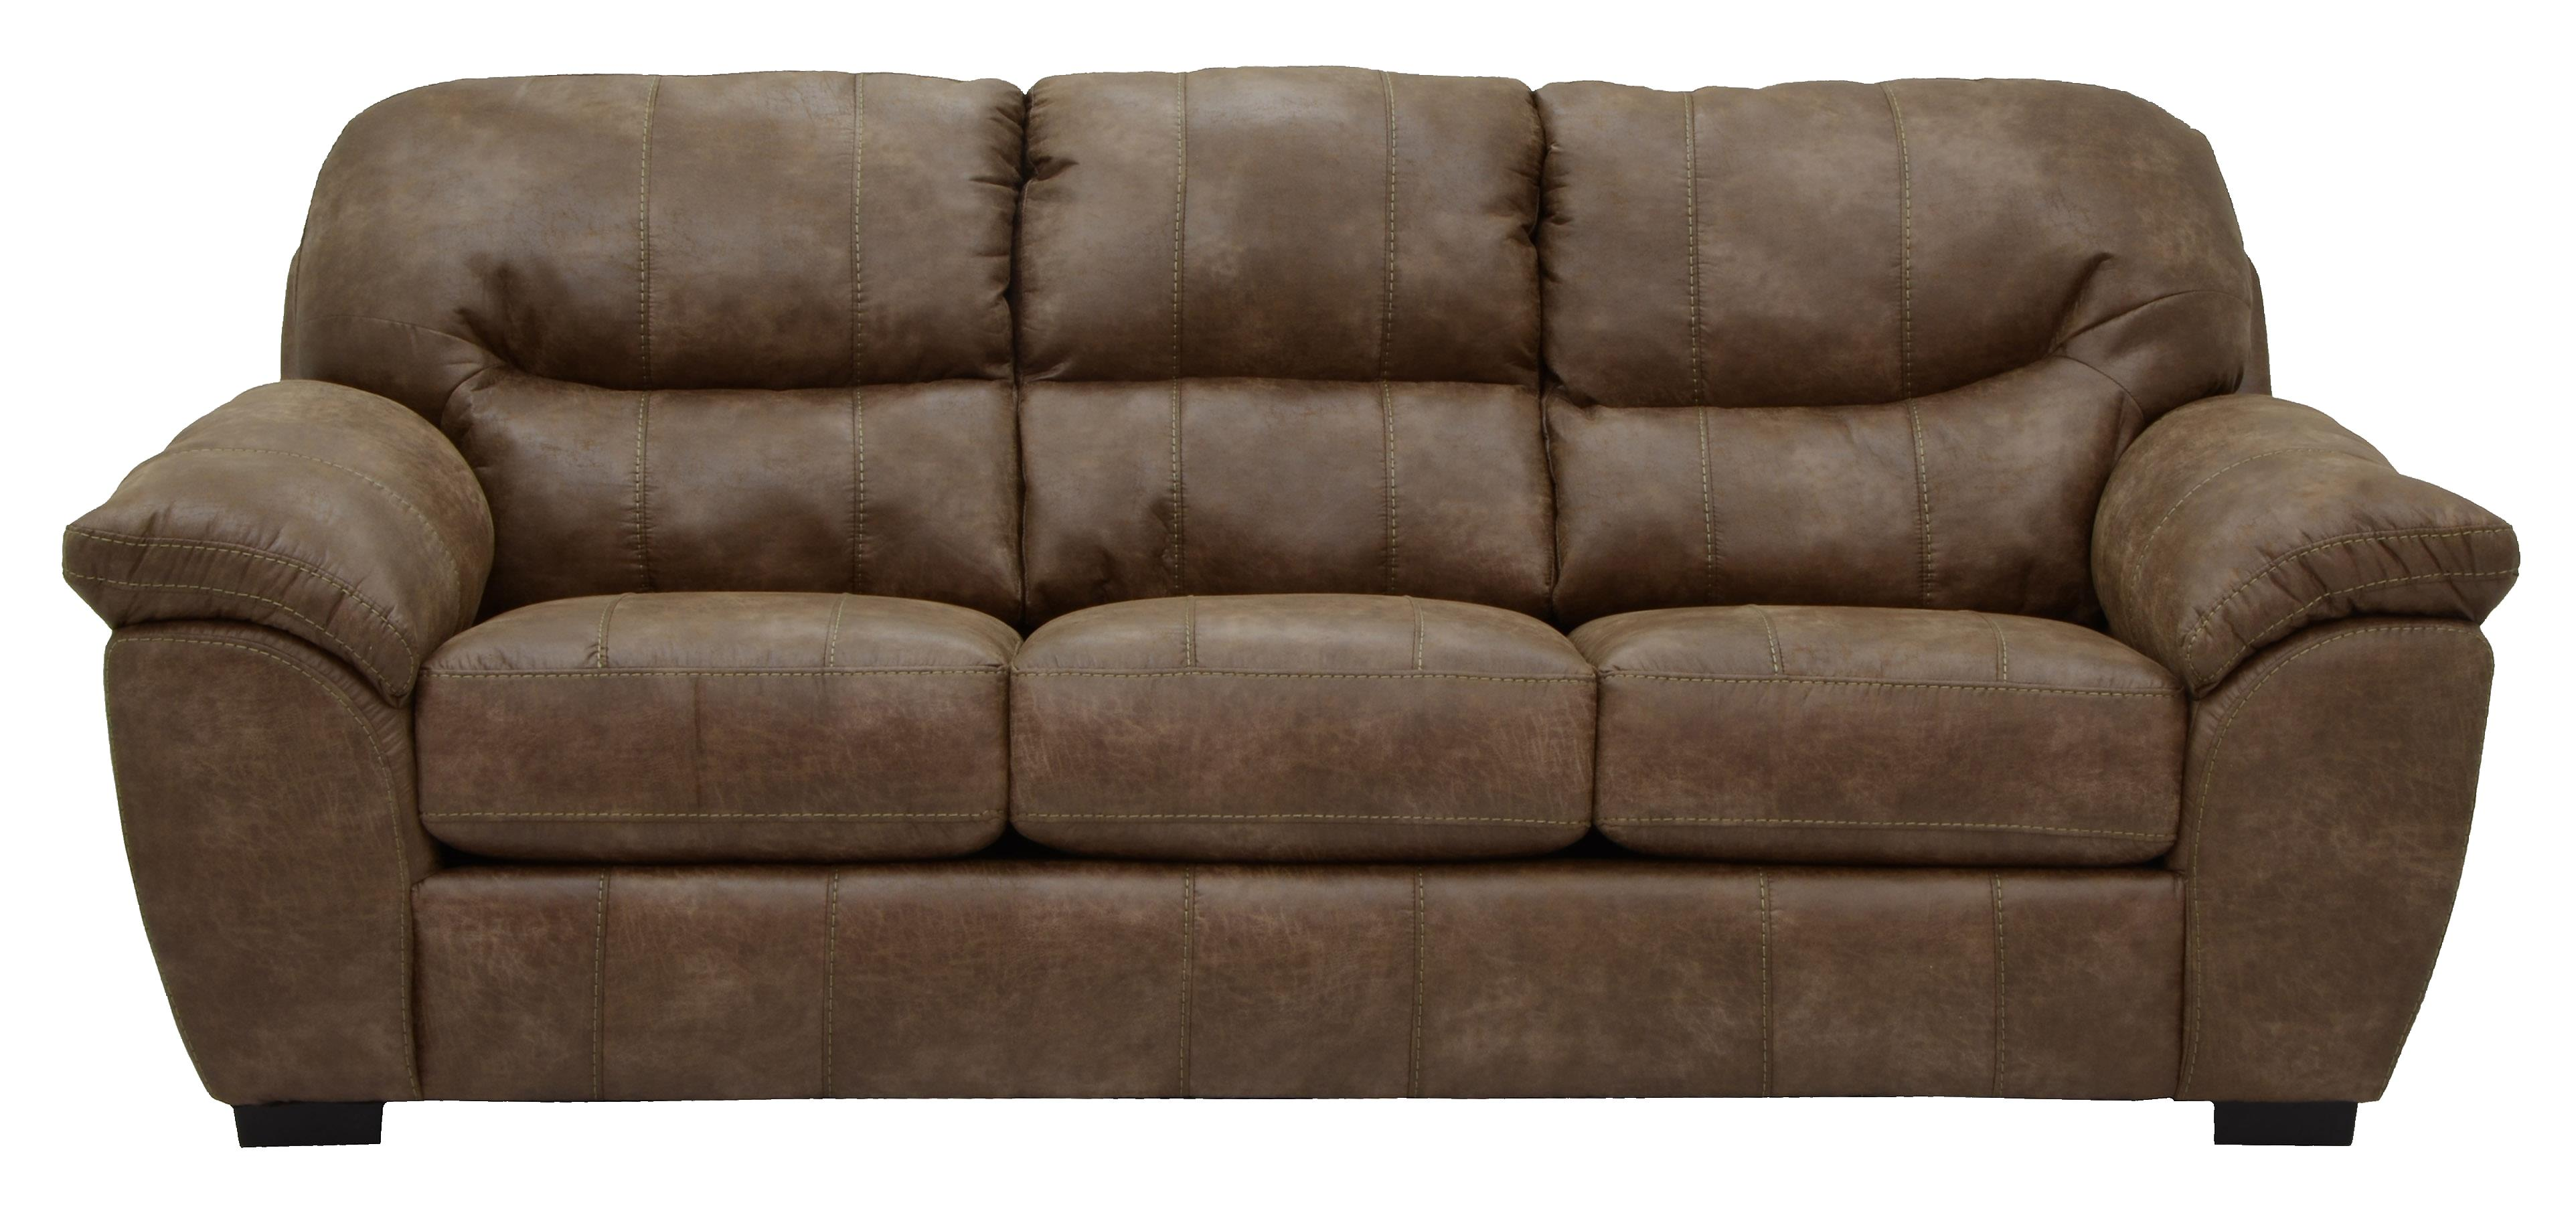 Kunstleder Couch Faux Leather Sofa For Living Rooms And Family Rooms By